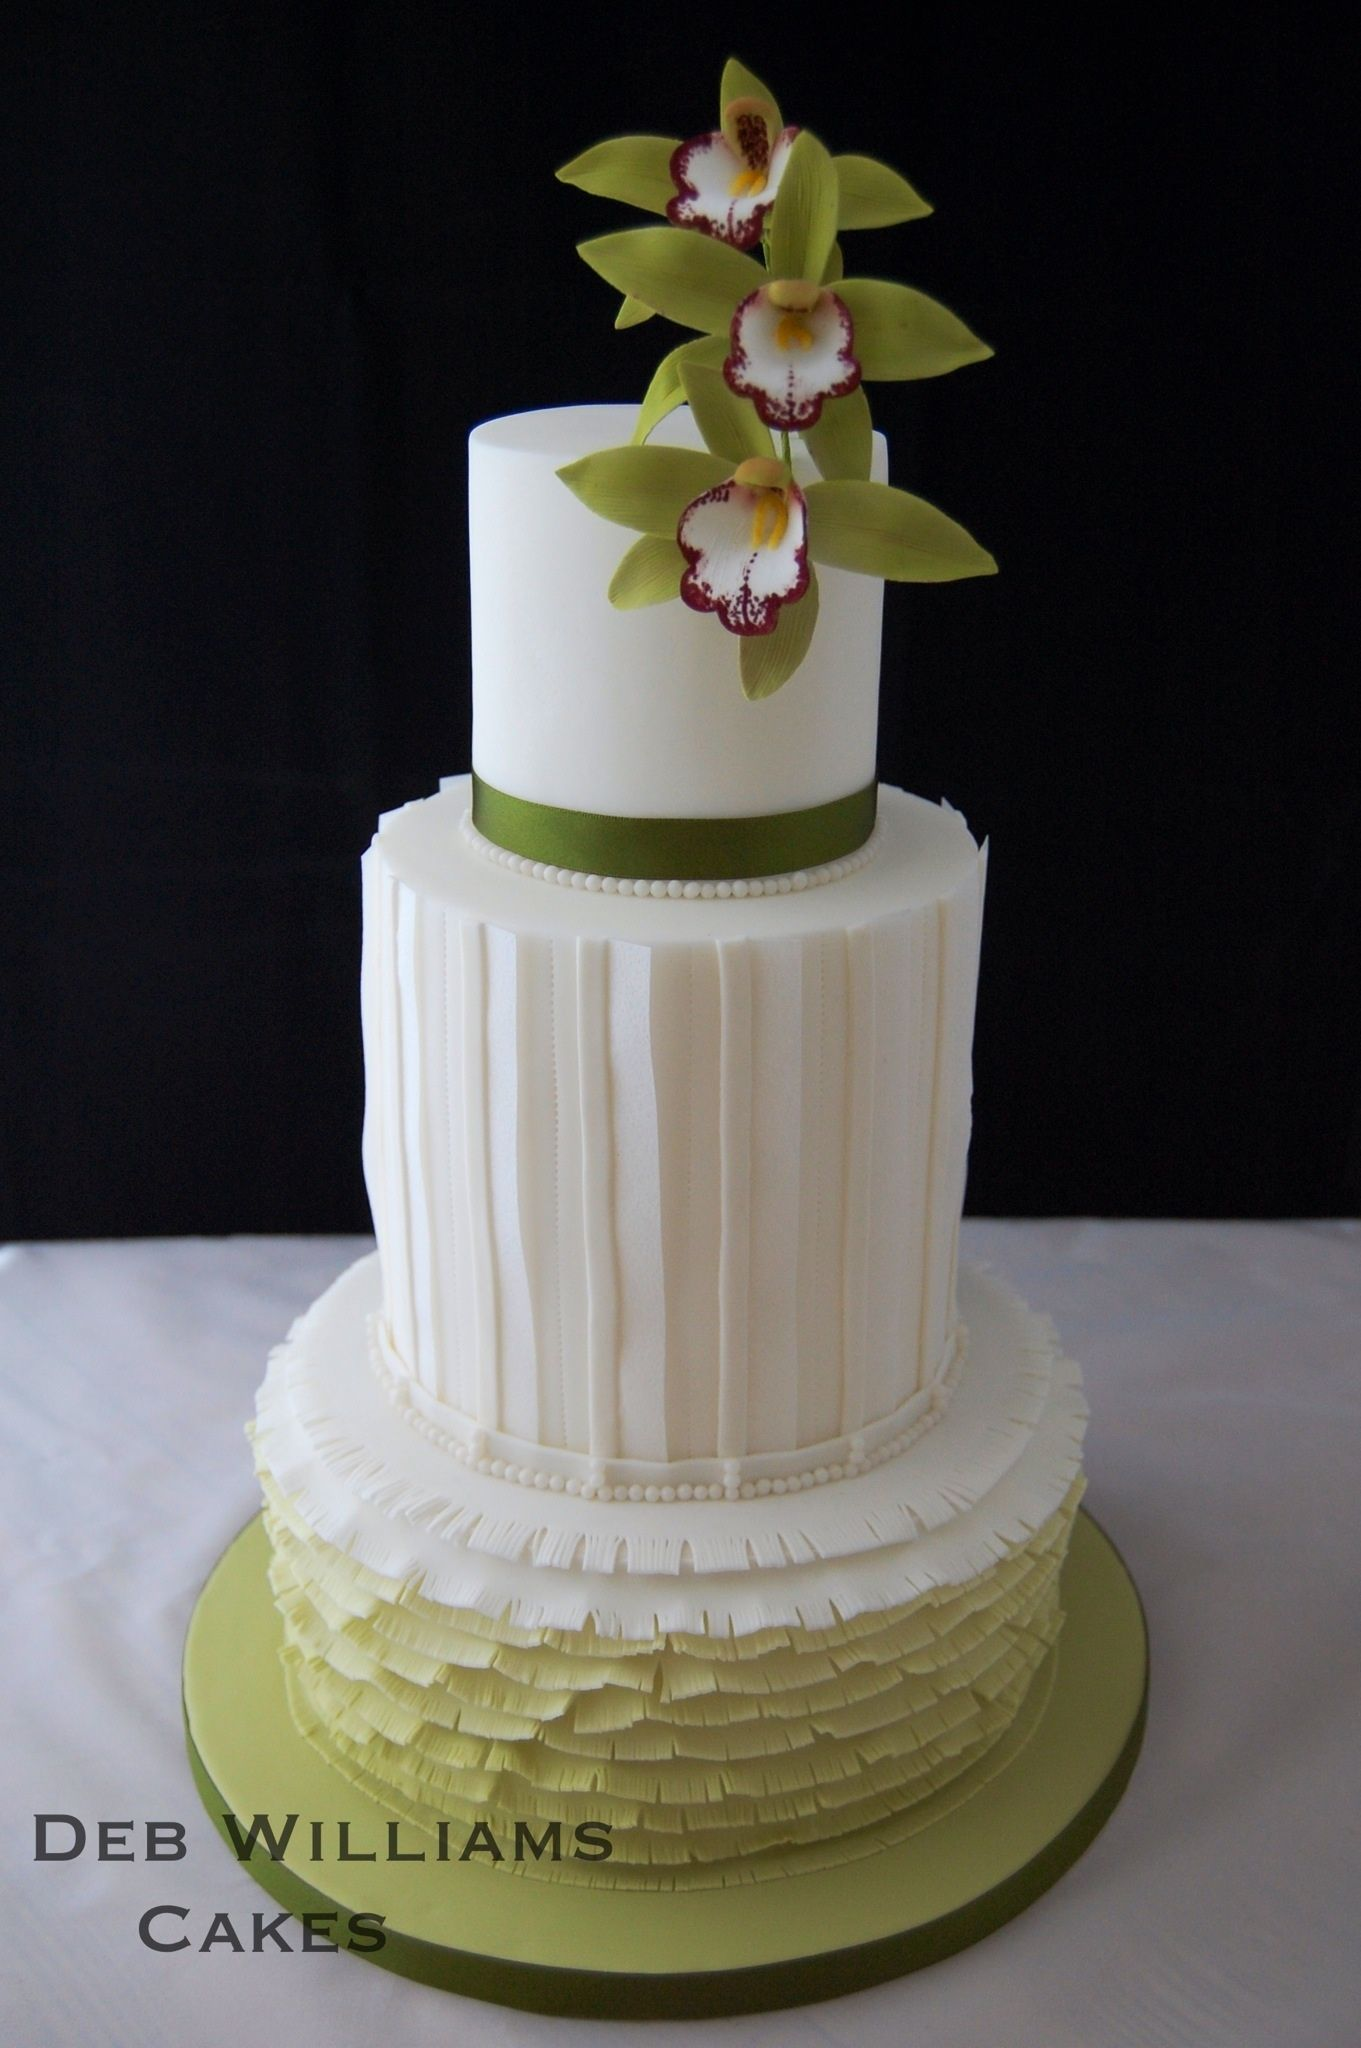 Fashion inspired cake by Deb Williams Cakes